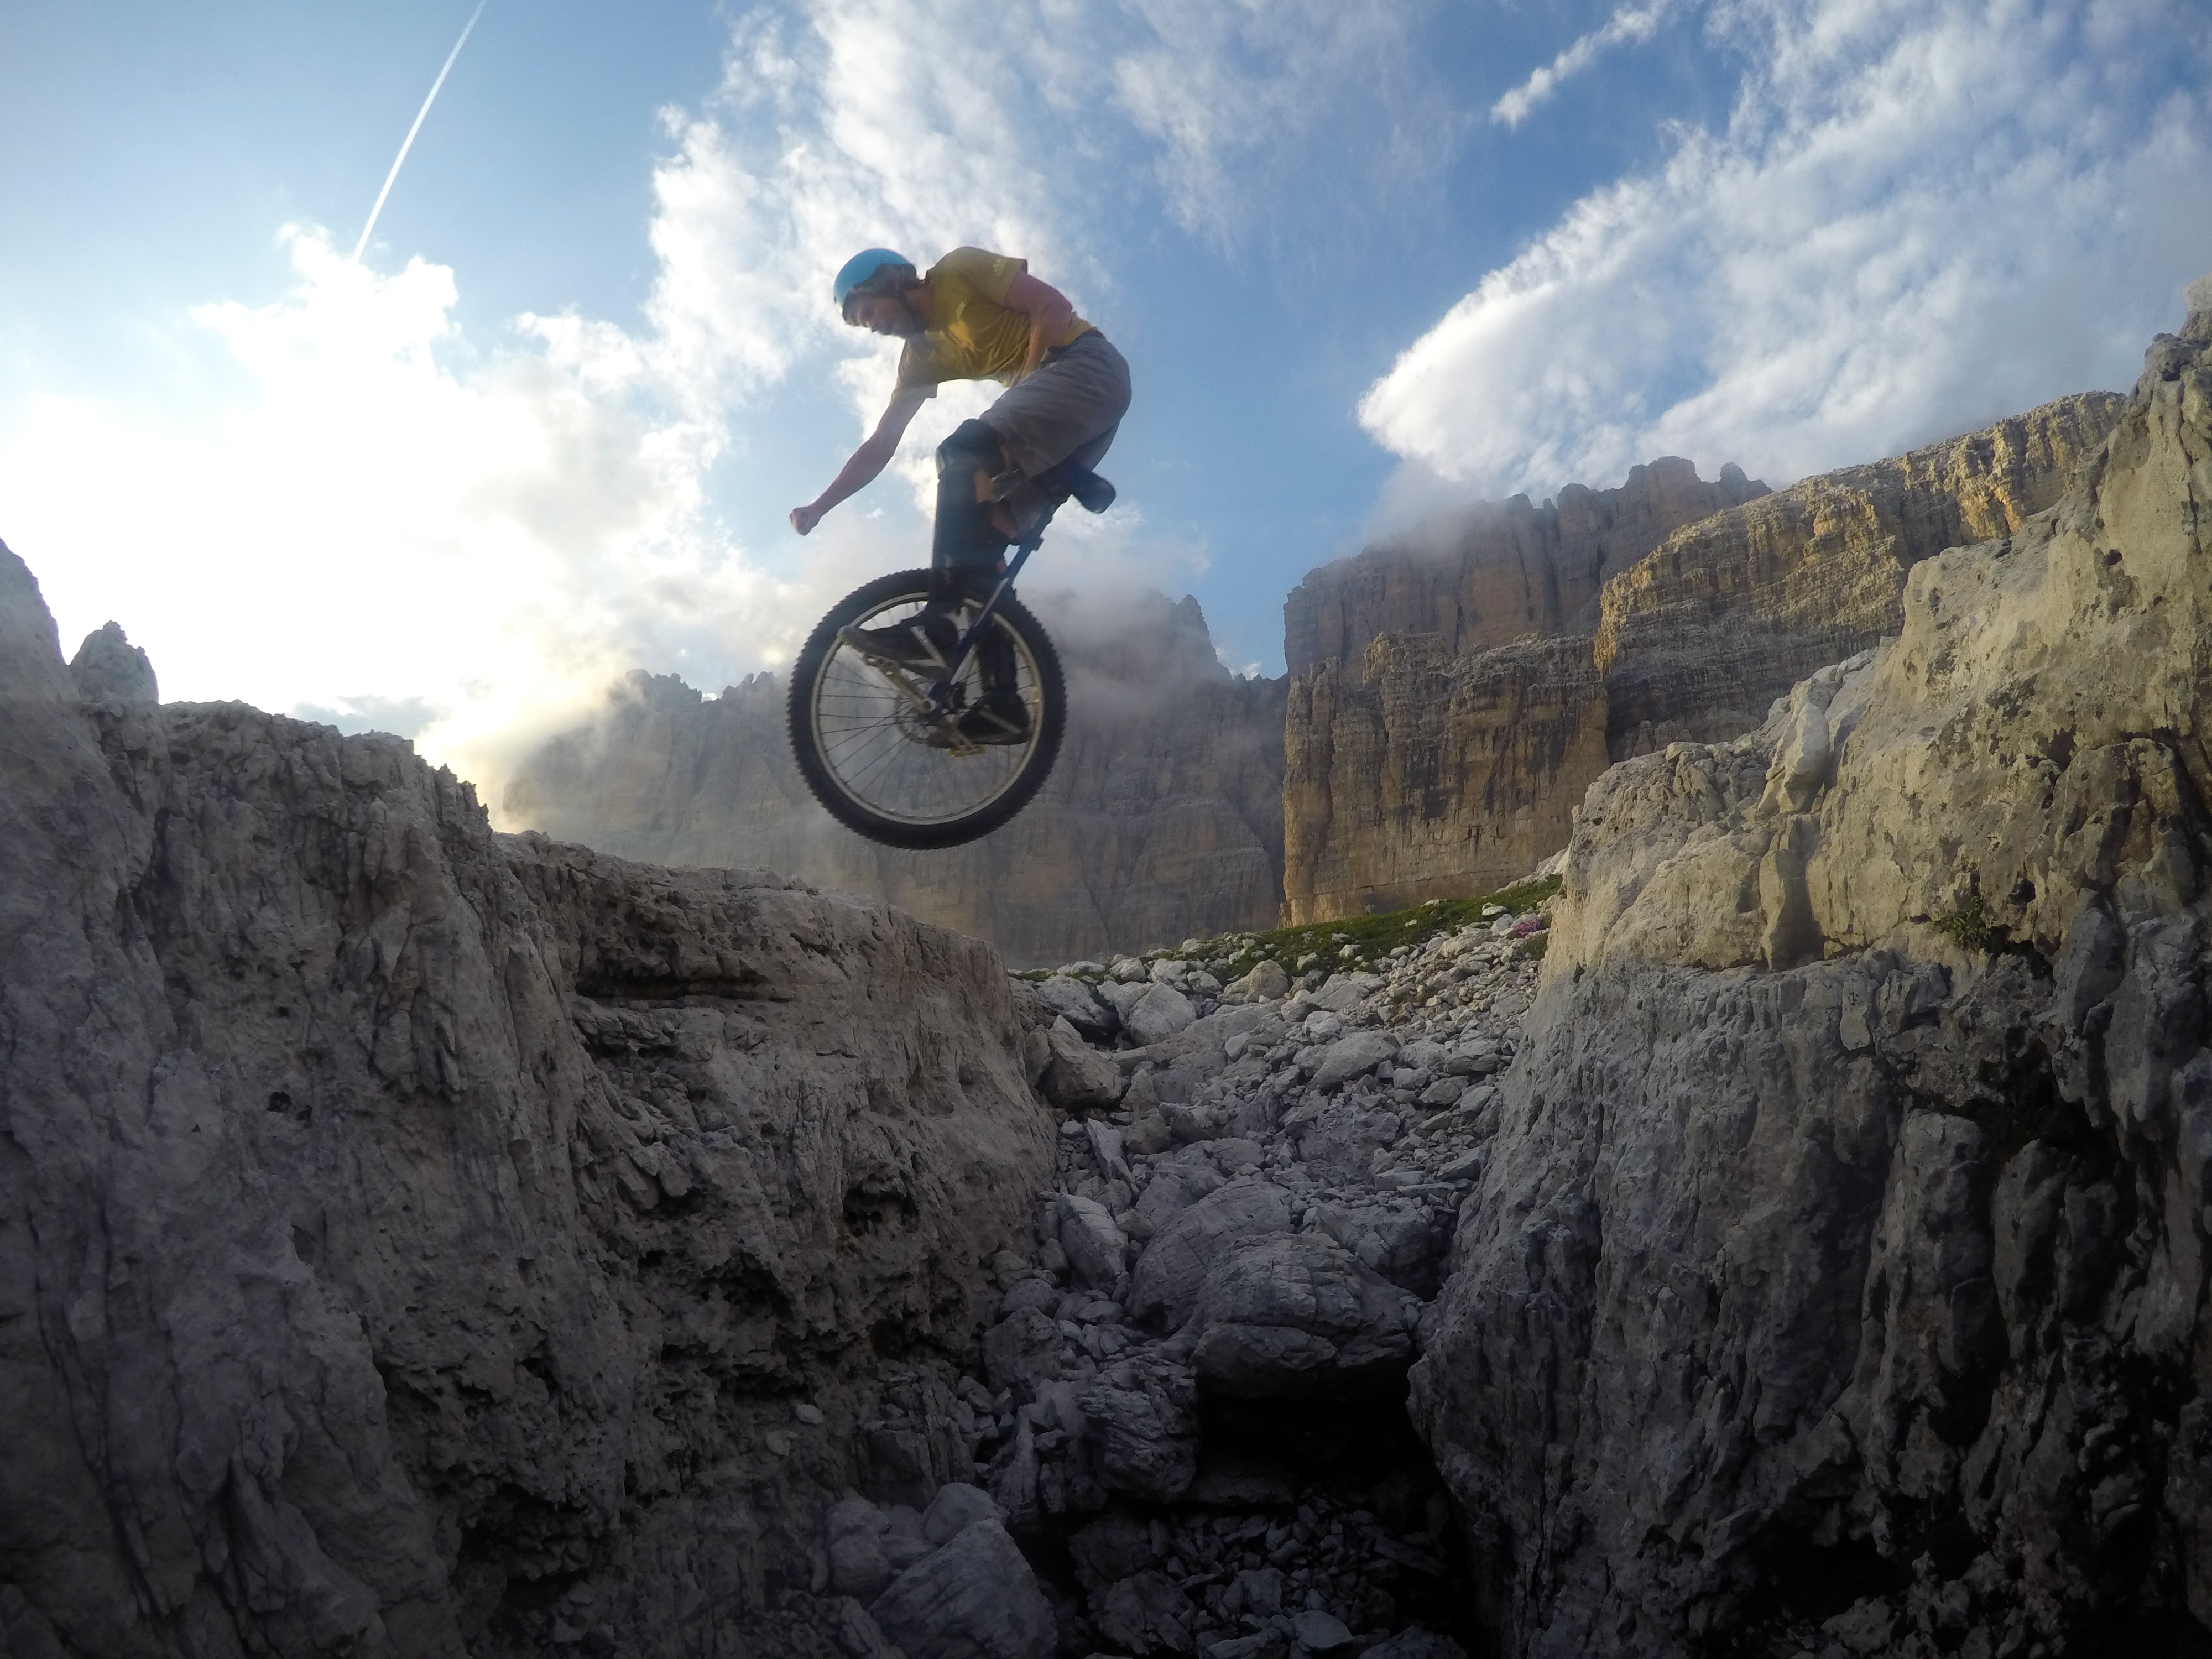 Lutz Eichholz jumping a huge gap in the Dolomites, Italy